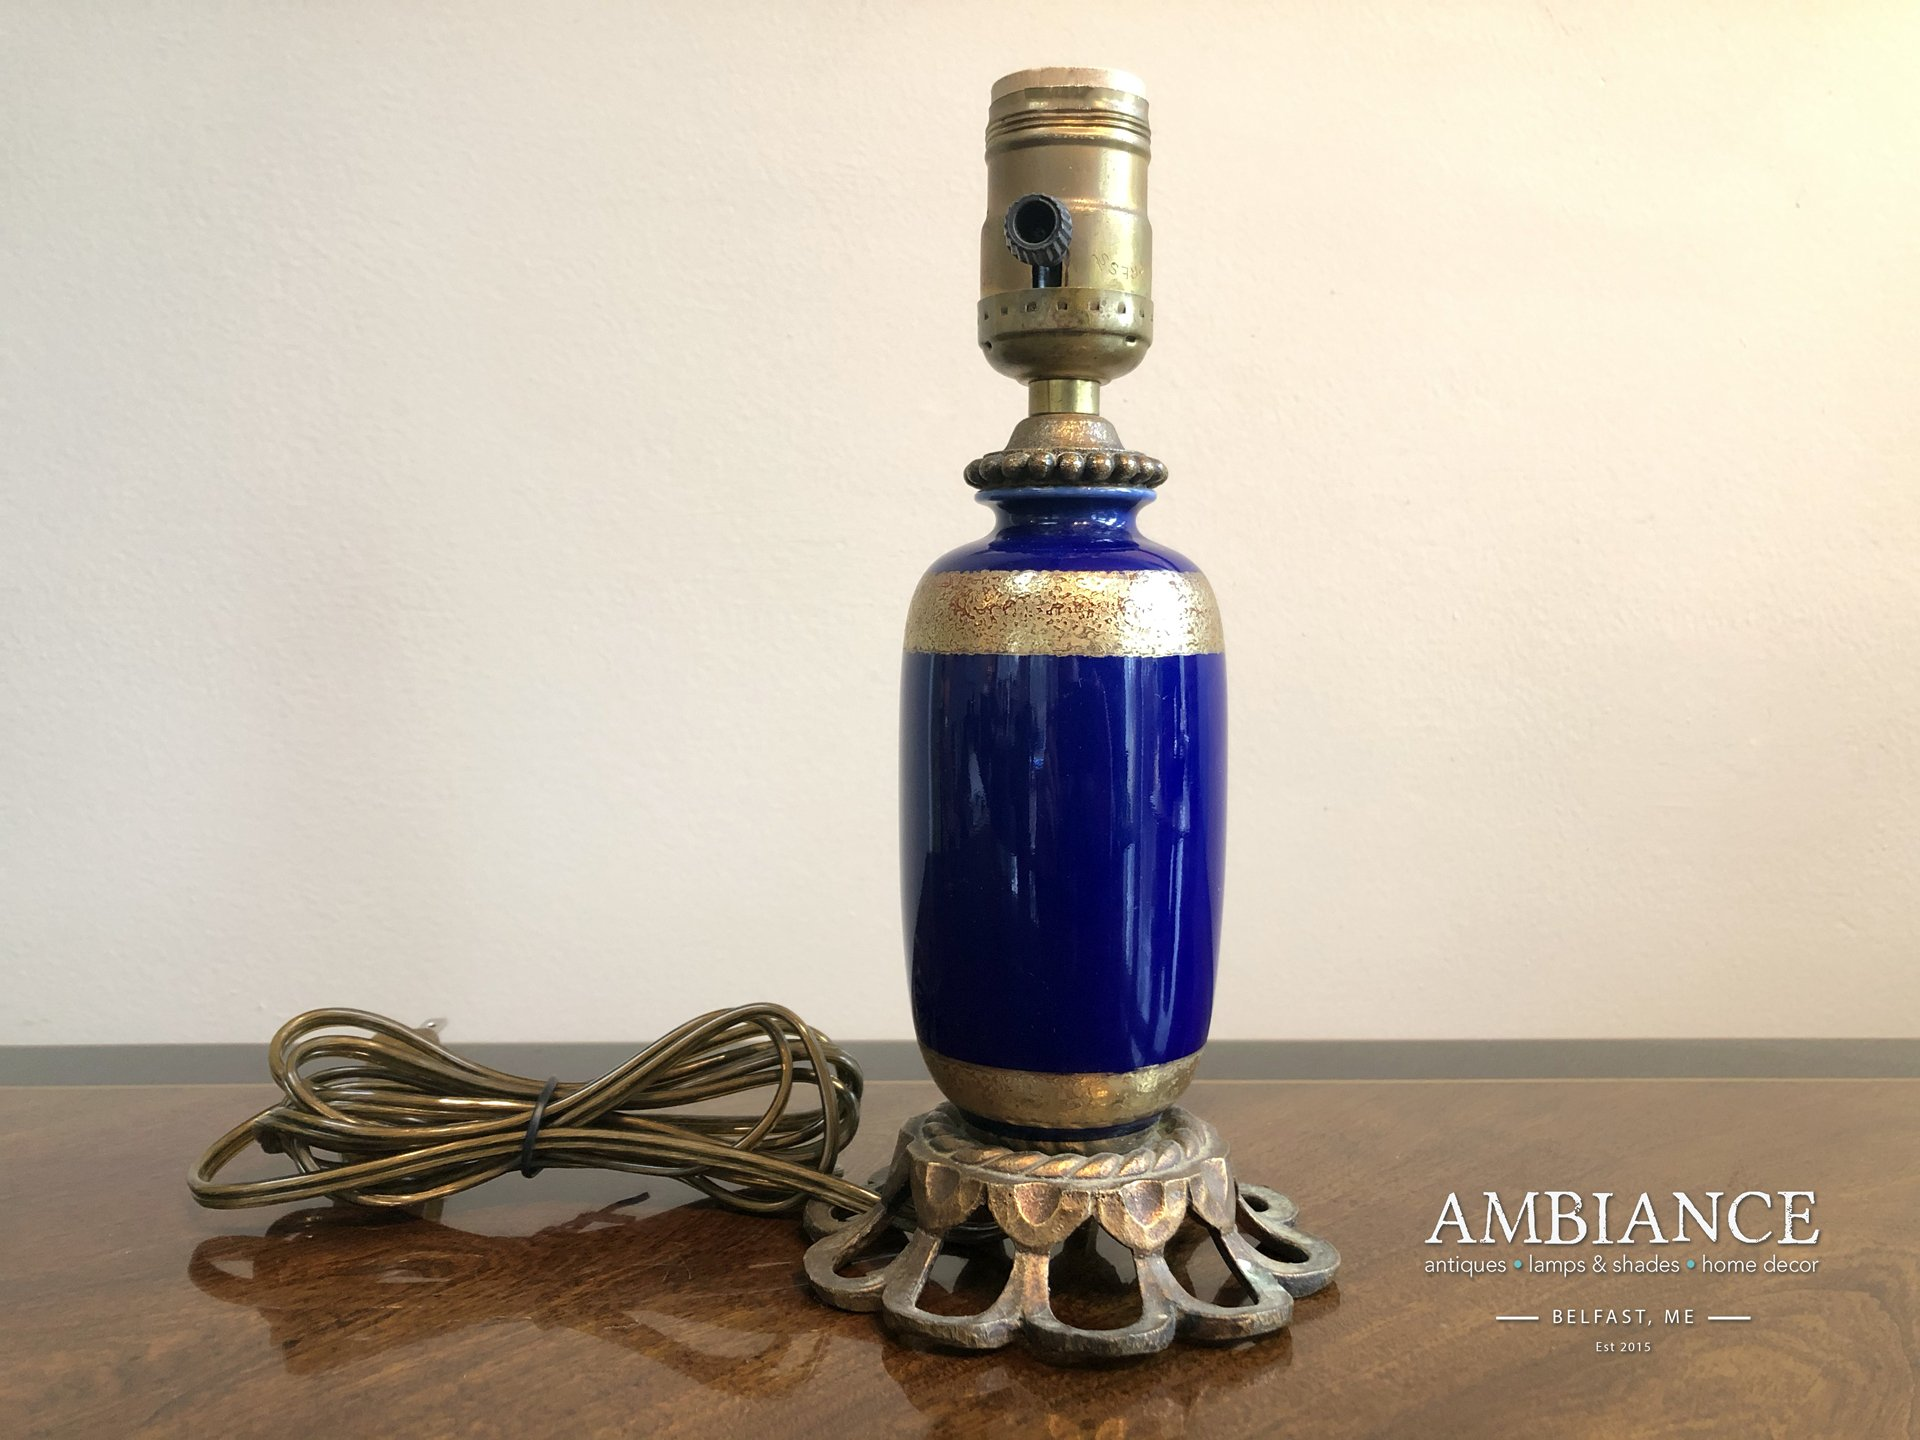 Cobalt Blue Porcelain Vintage Lamp at AMBIANCE in Belfast, Maine